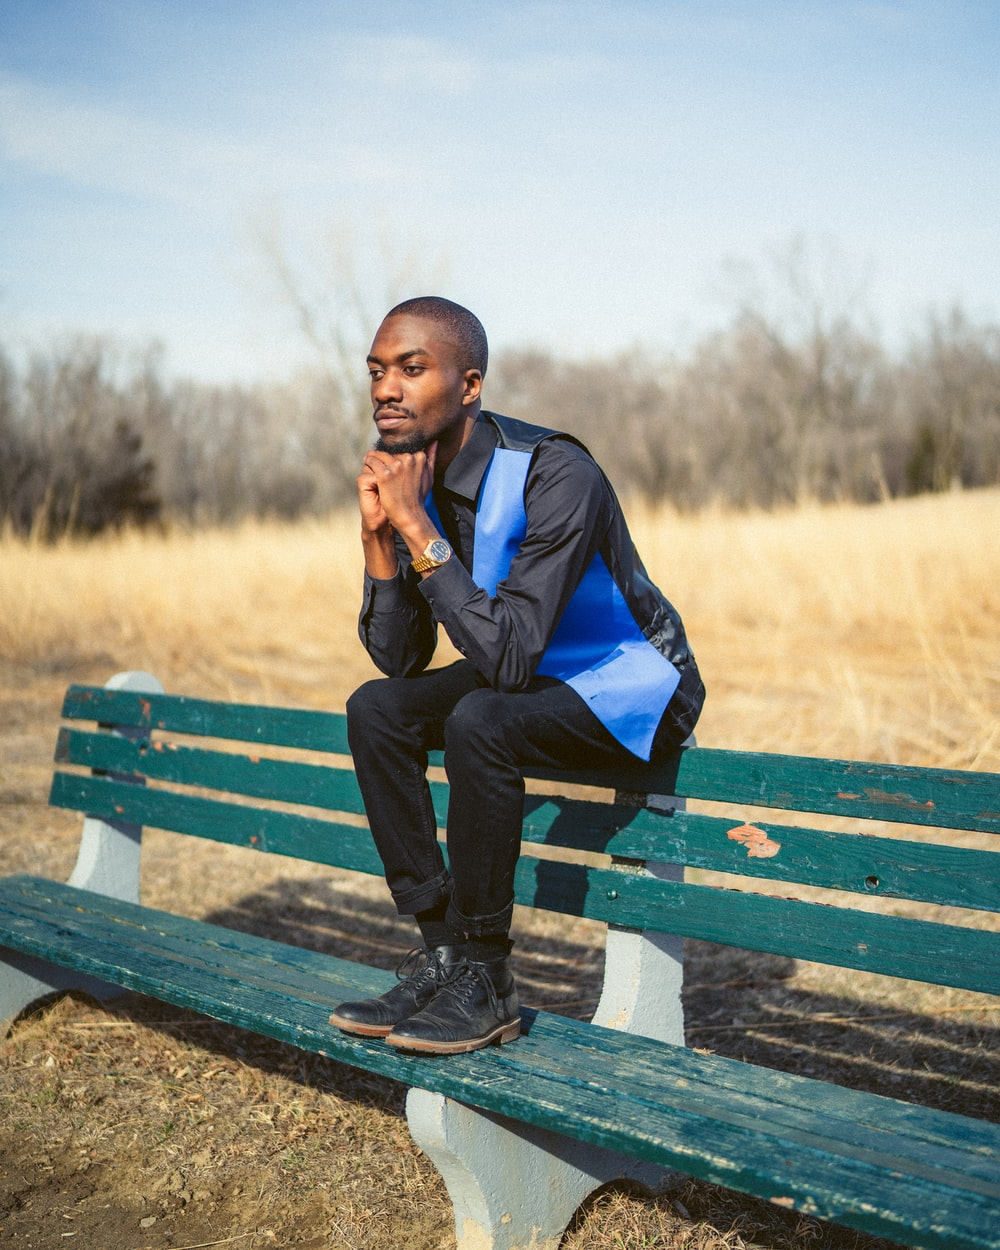 man in blue jacket sitting on brown wooden bench during daytime